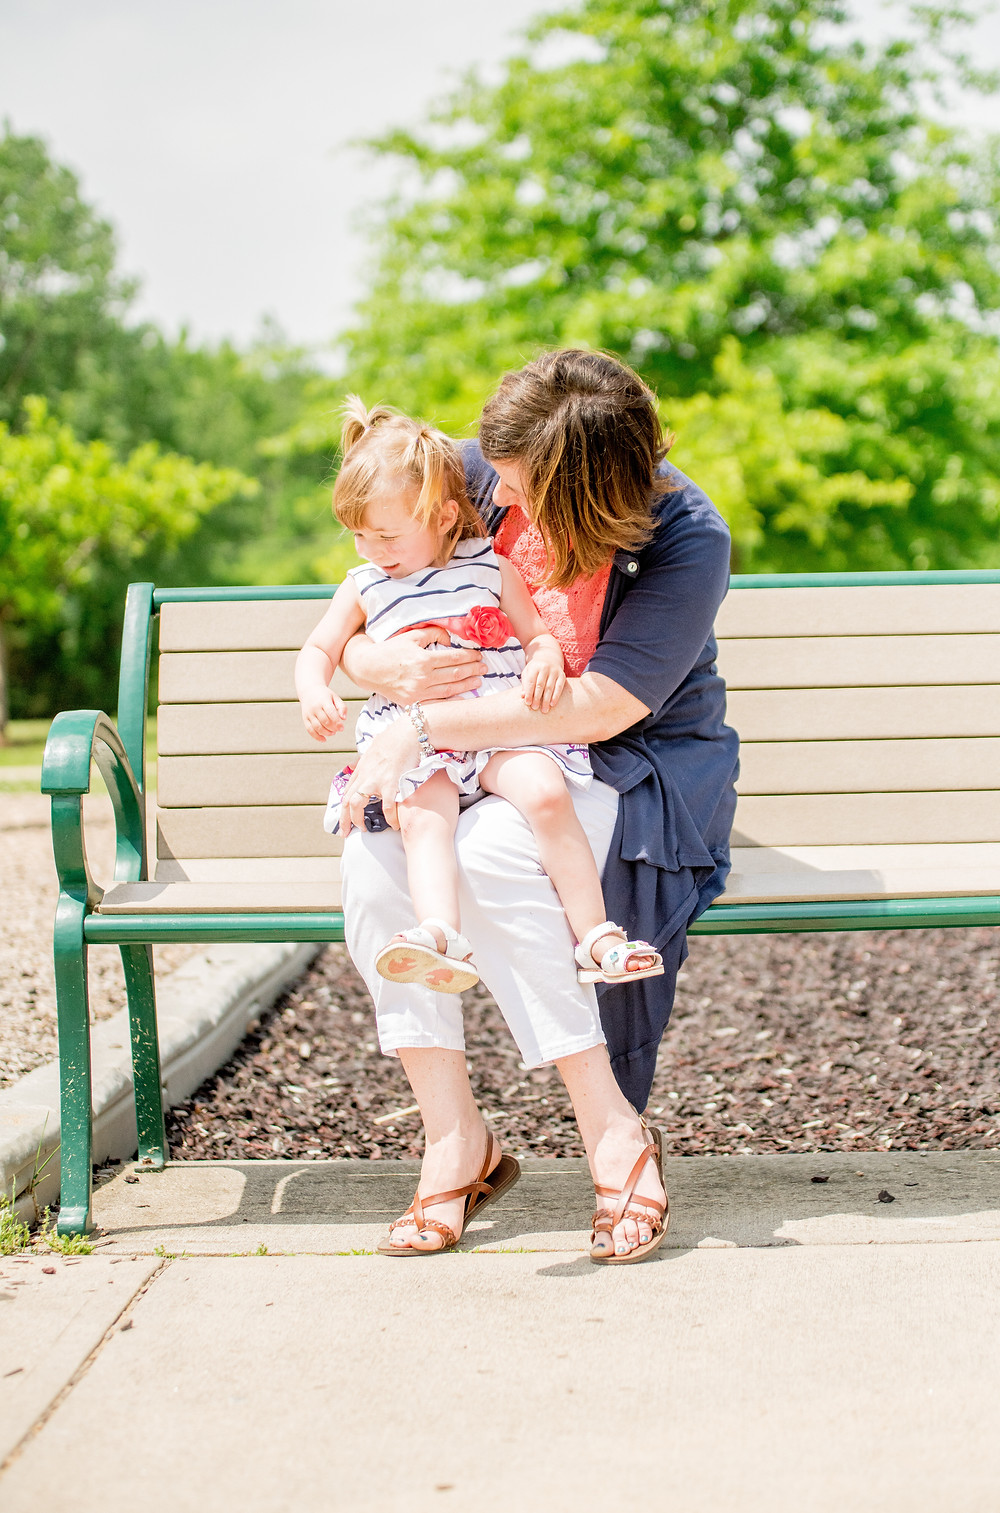 Mom and daughter cuddle sitting on a bench